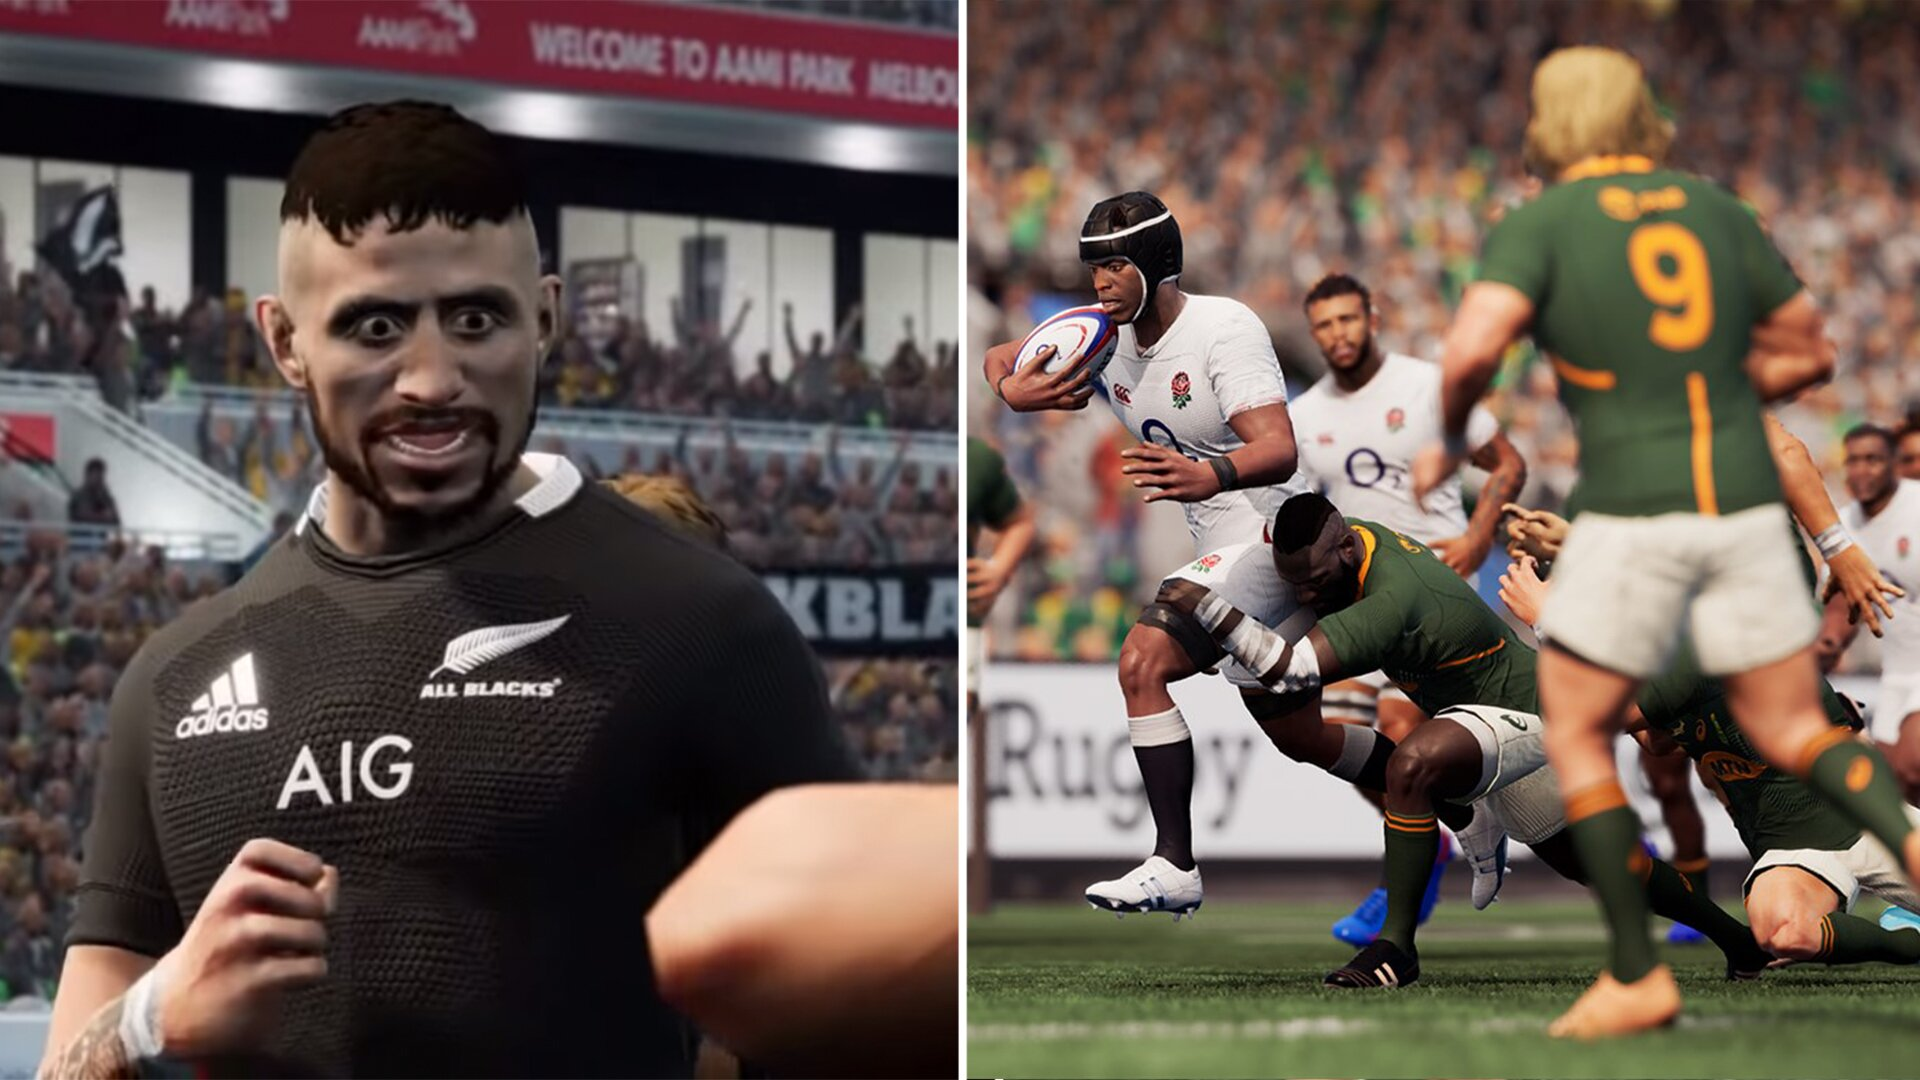 An honest review of the brand new rugby game that has just been released today